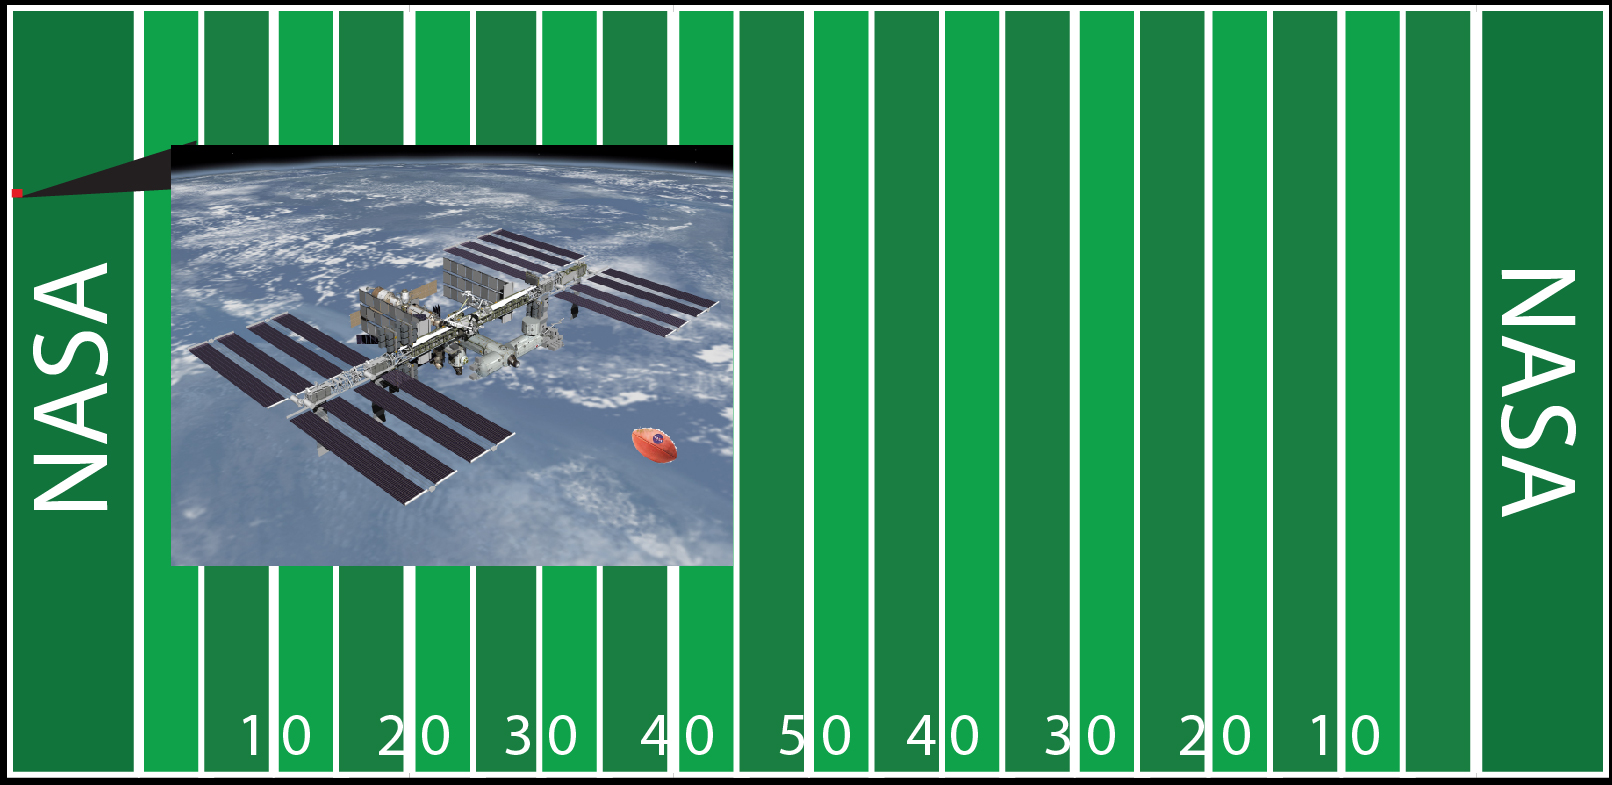 A graphic showing the International Space Station near the end of a football field